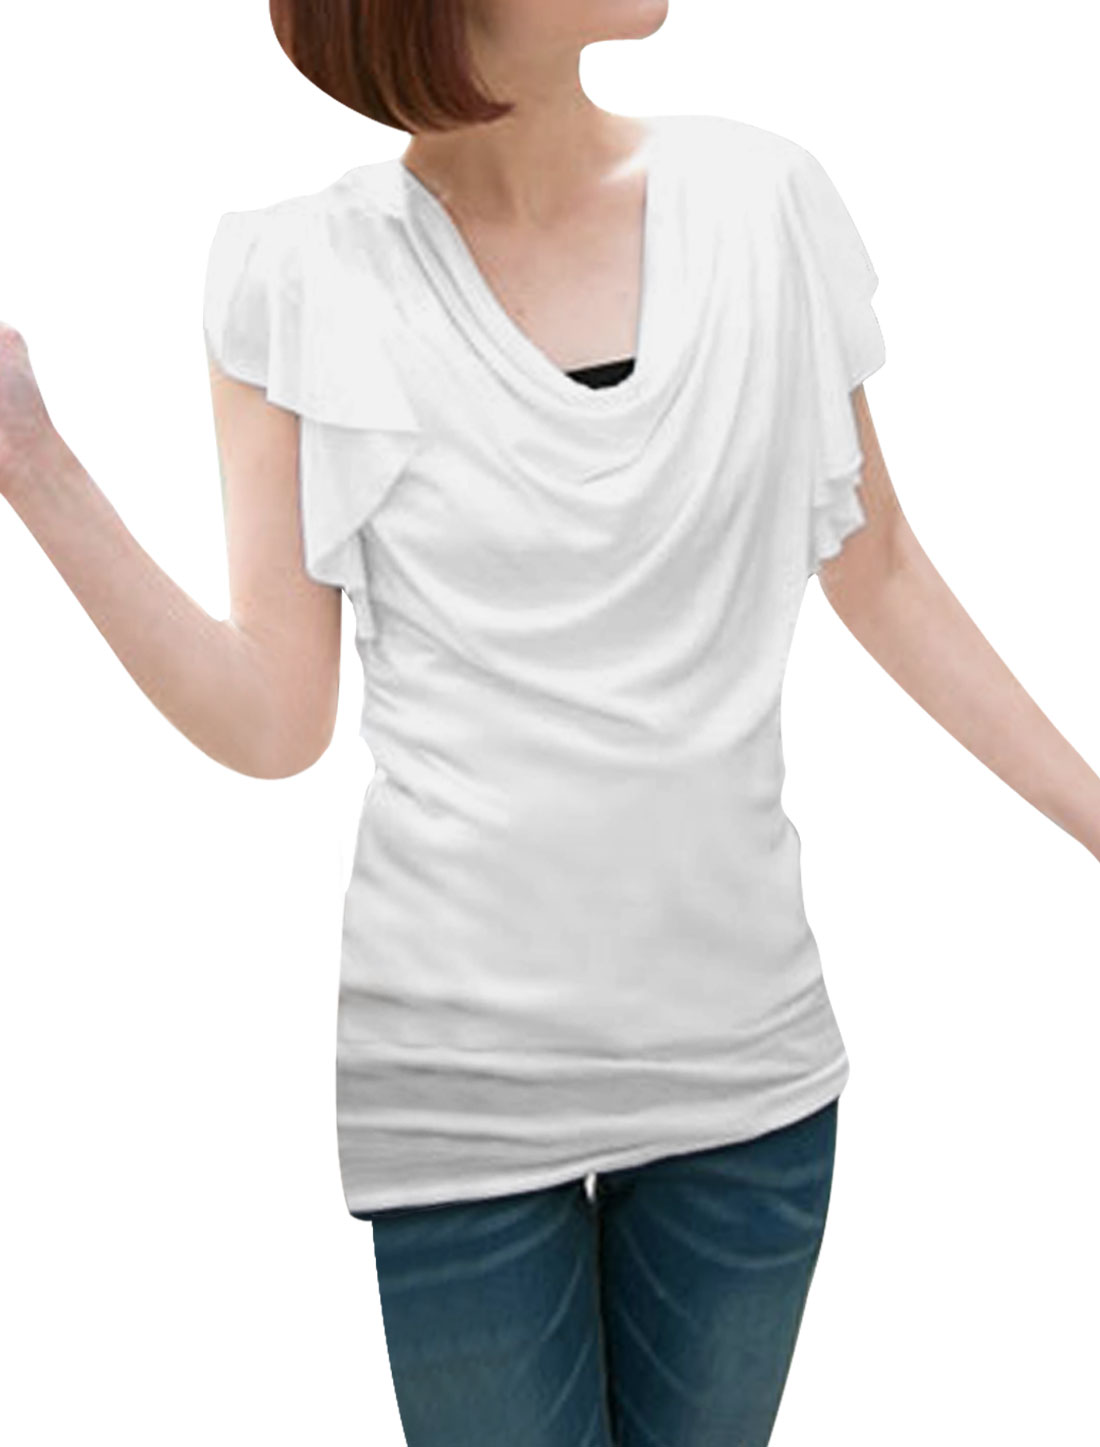 Lady Stylish Cowl Neck Ruffled Sleeve Design Pure White Summer Shirt XS